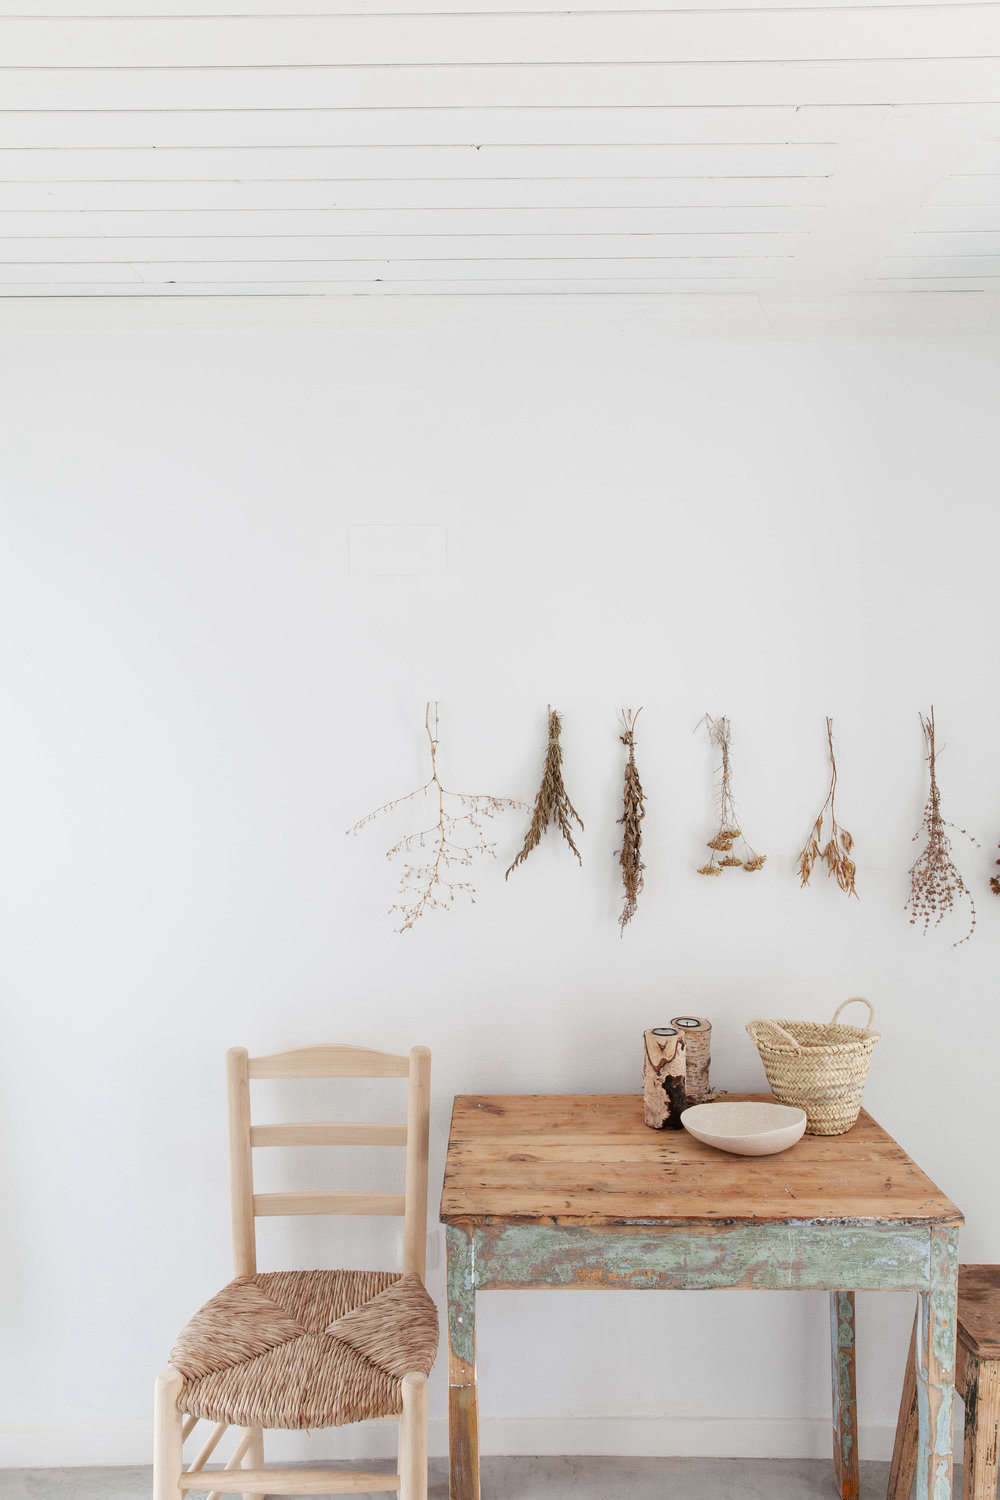 Bundles of dried flowers and stems make for a sweet vignette above a dining table.